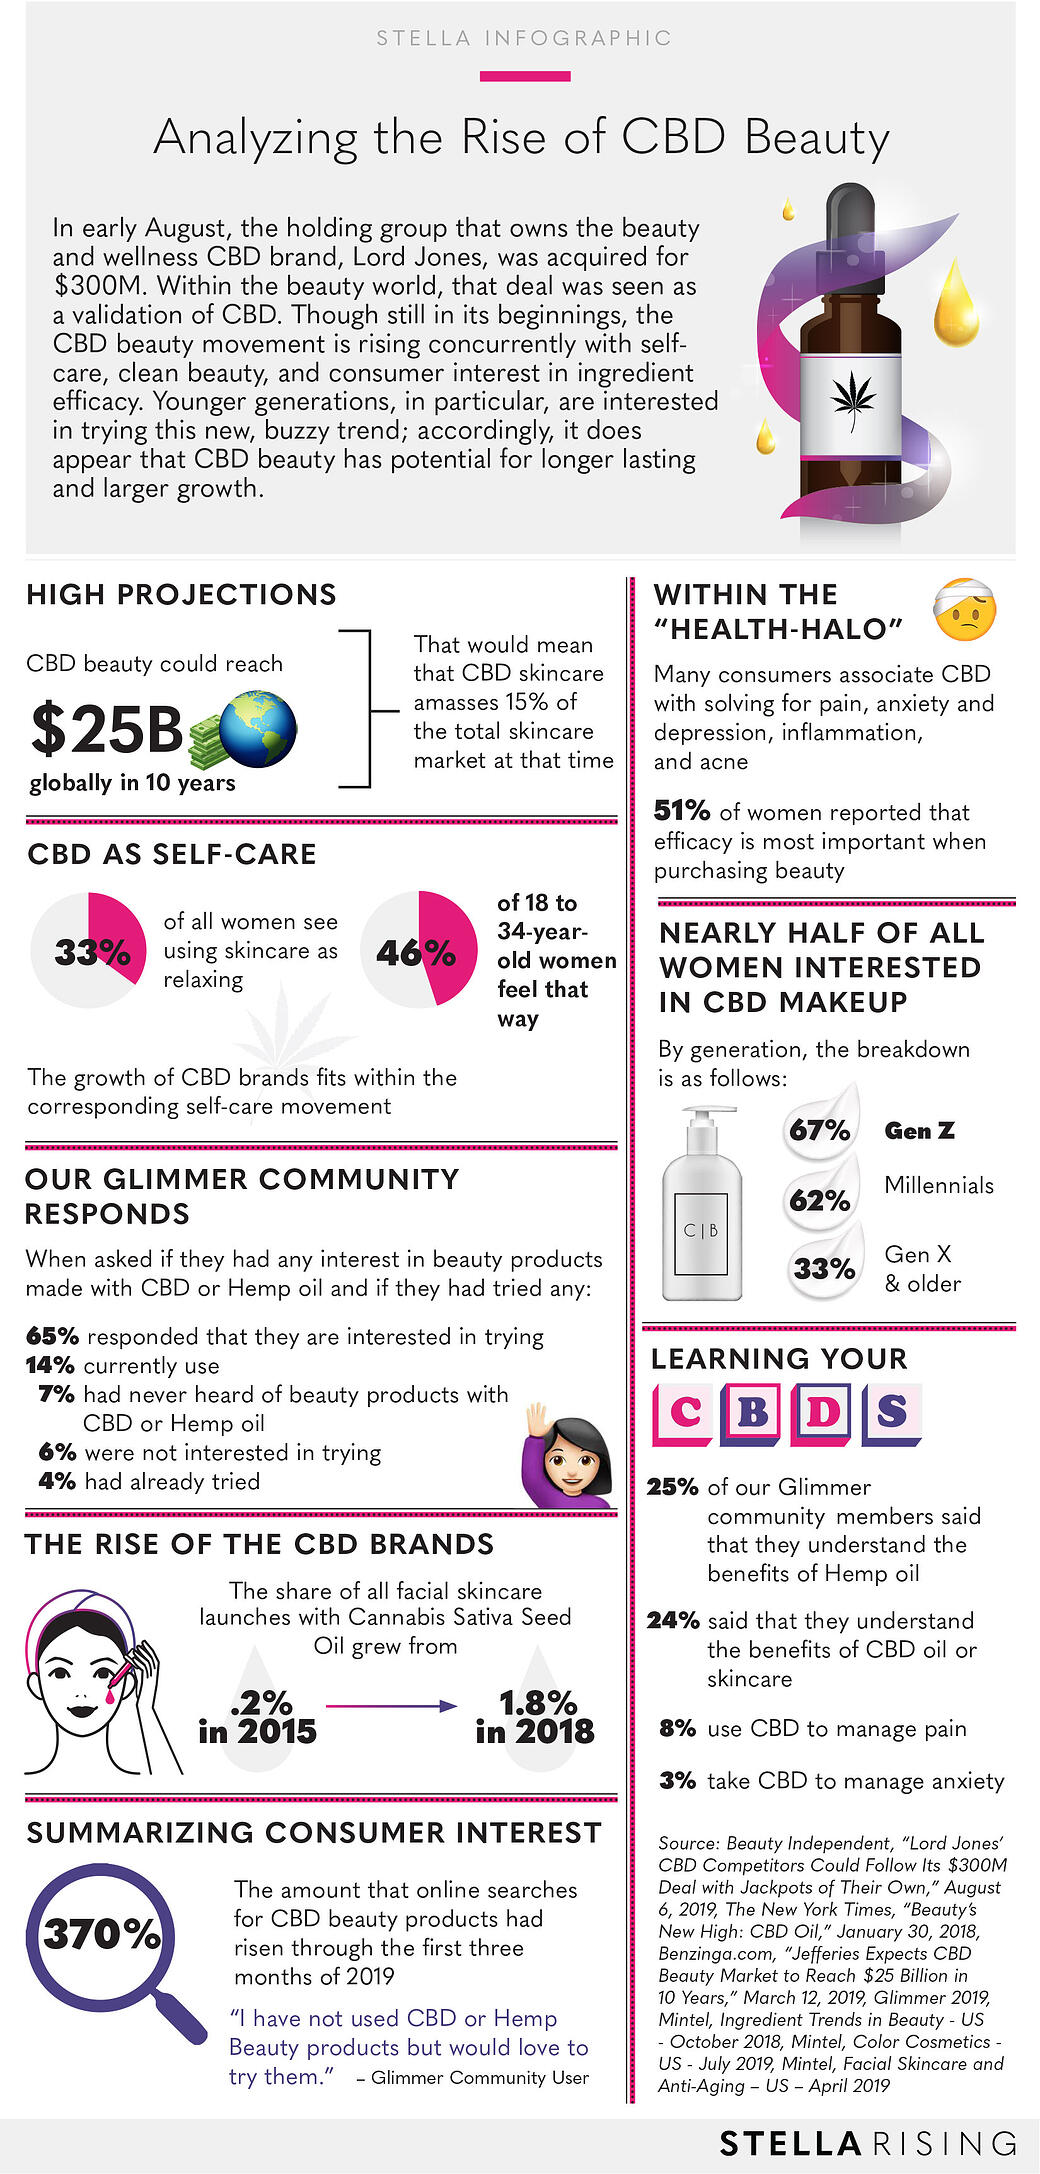 RiseofCBD_Beauty_Infographic